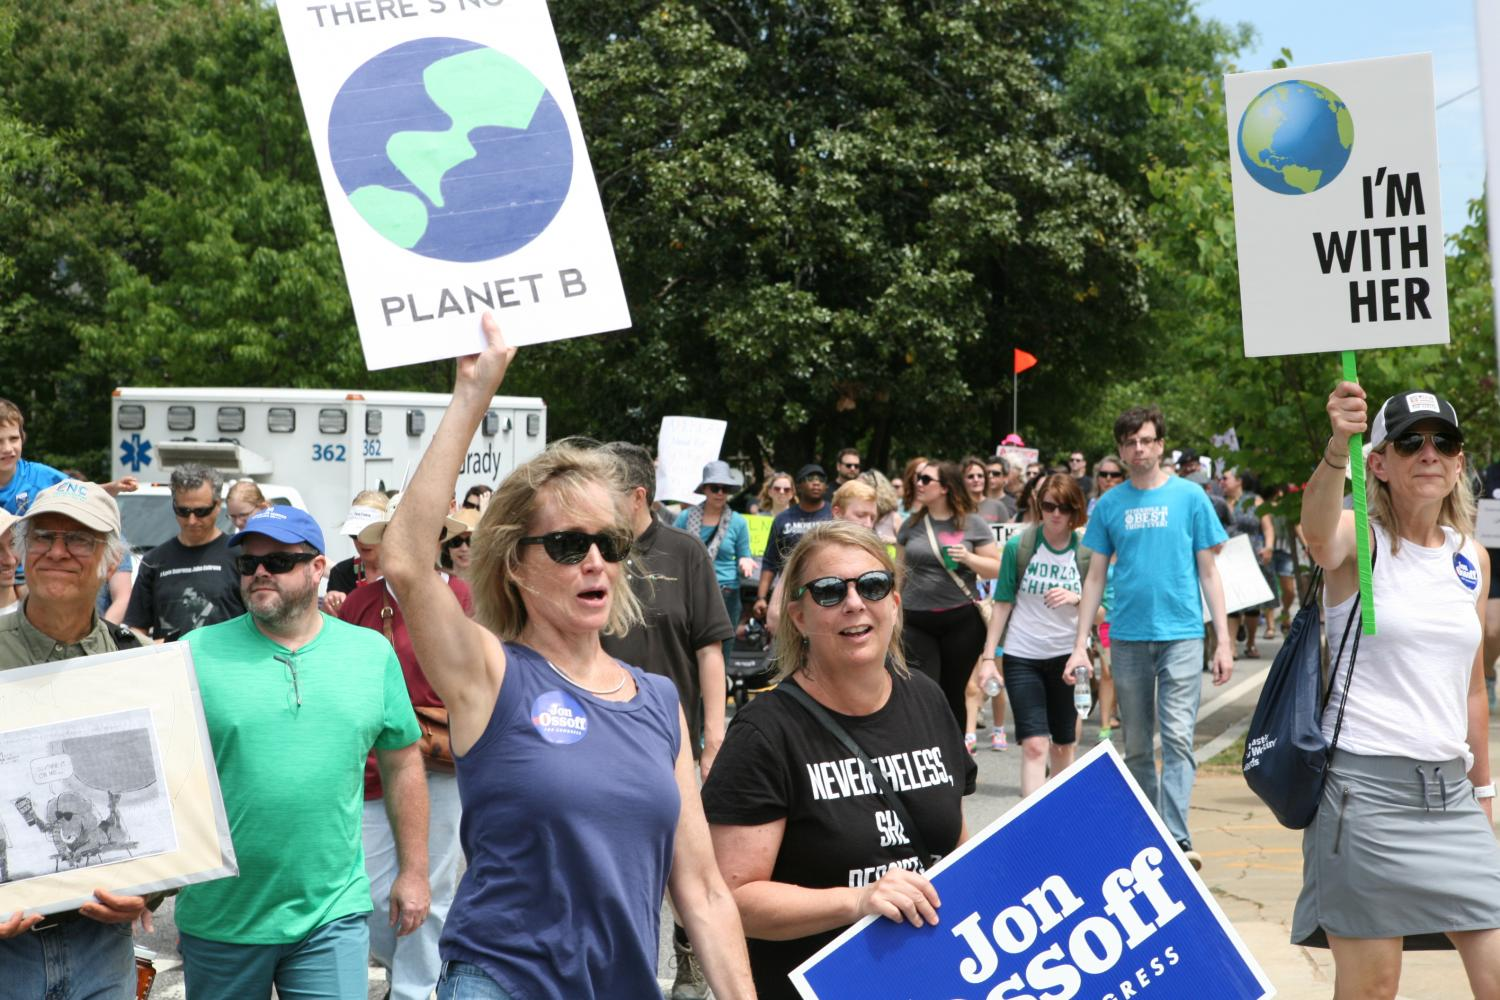 Marchers+turn+onto+Euclid+Ave+in+Candler+Park+carrying+signs+supporting+environmental+friendly+policy.+Some+marchers+took+a+more+political+stance%2C+carrying+signs+reading+supporting+Jon+Ossoff.+